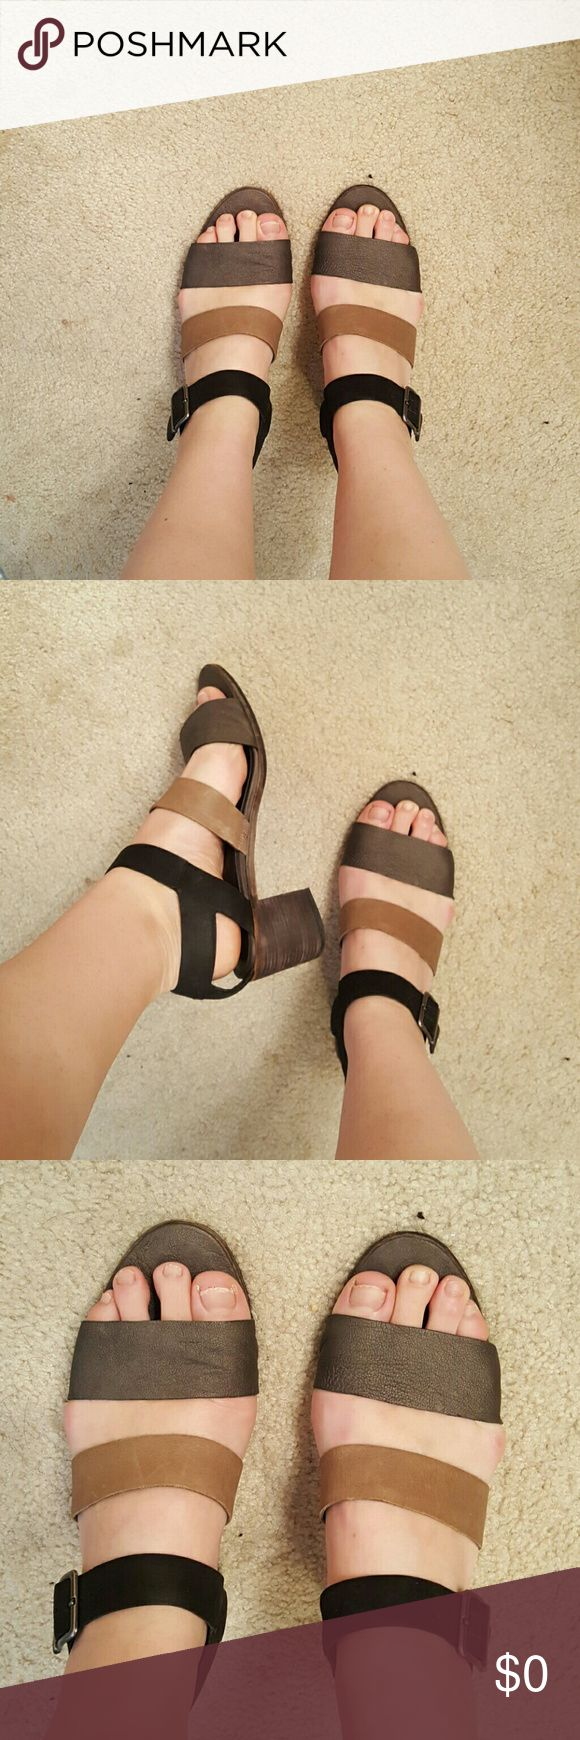 Additional pics of perfect neutral sandals More pics! See original listing to purchase! Eileen Fisher Shoes Sandals